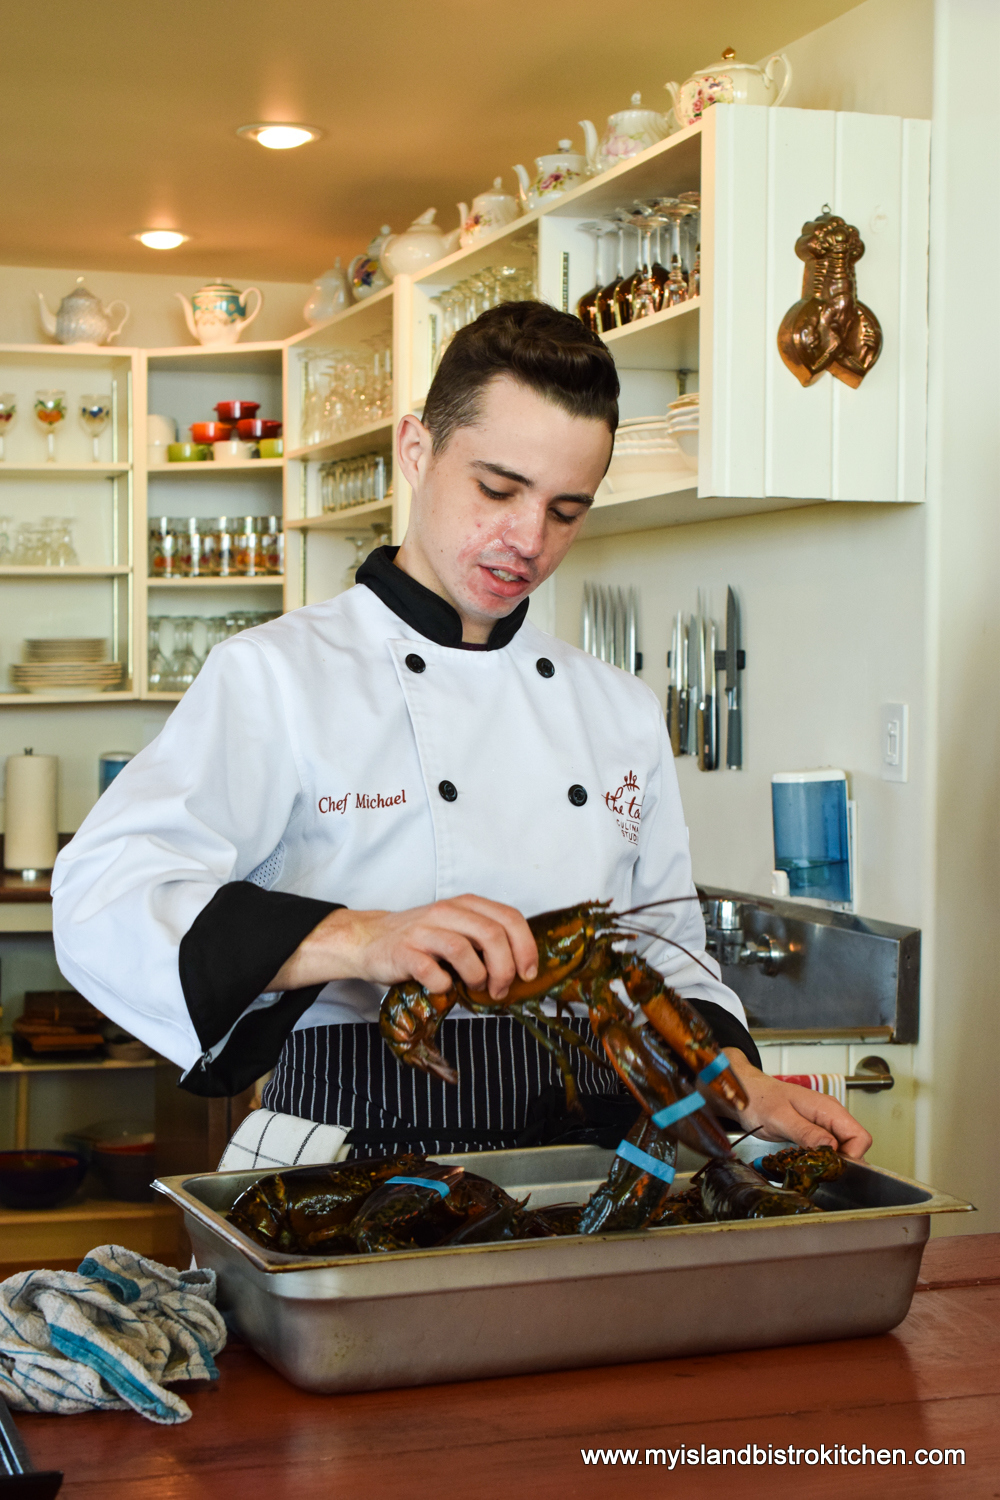 Executive Chef Michael Bradley at The Table Culinary Studio in New London, PEI